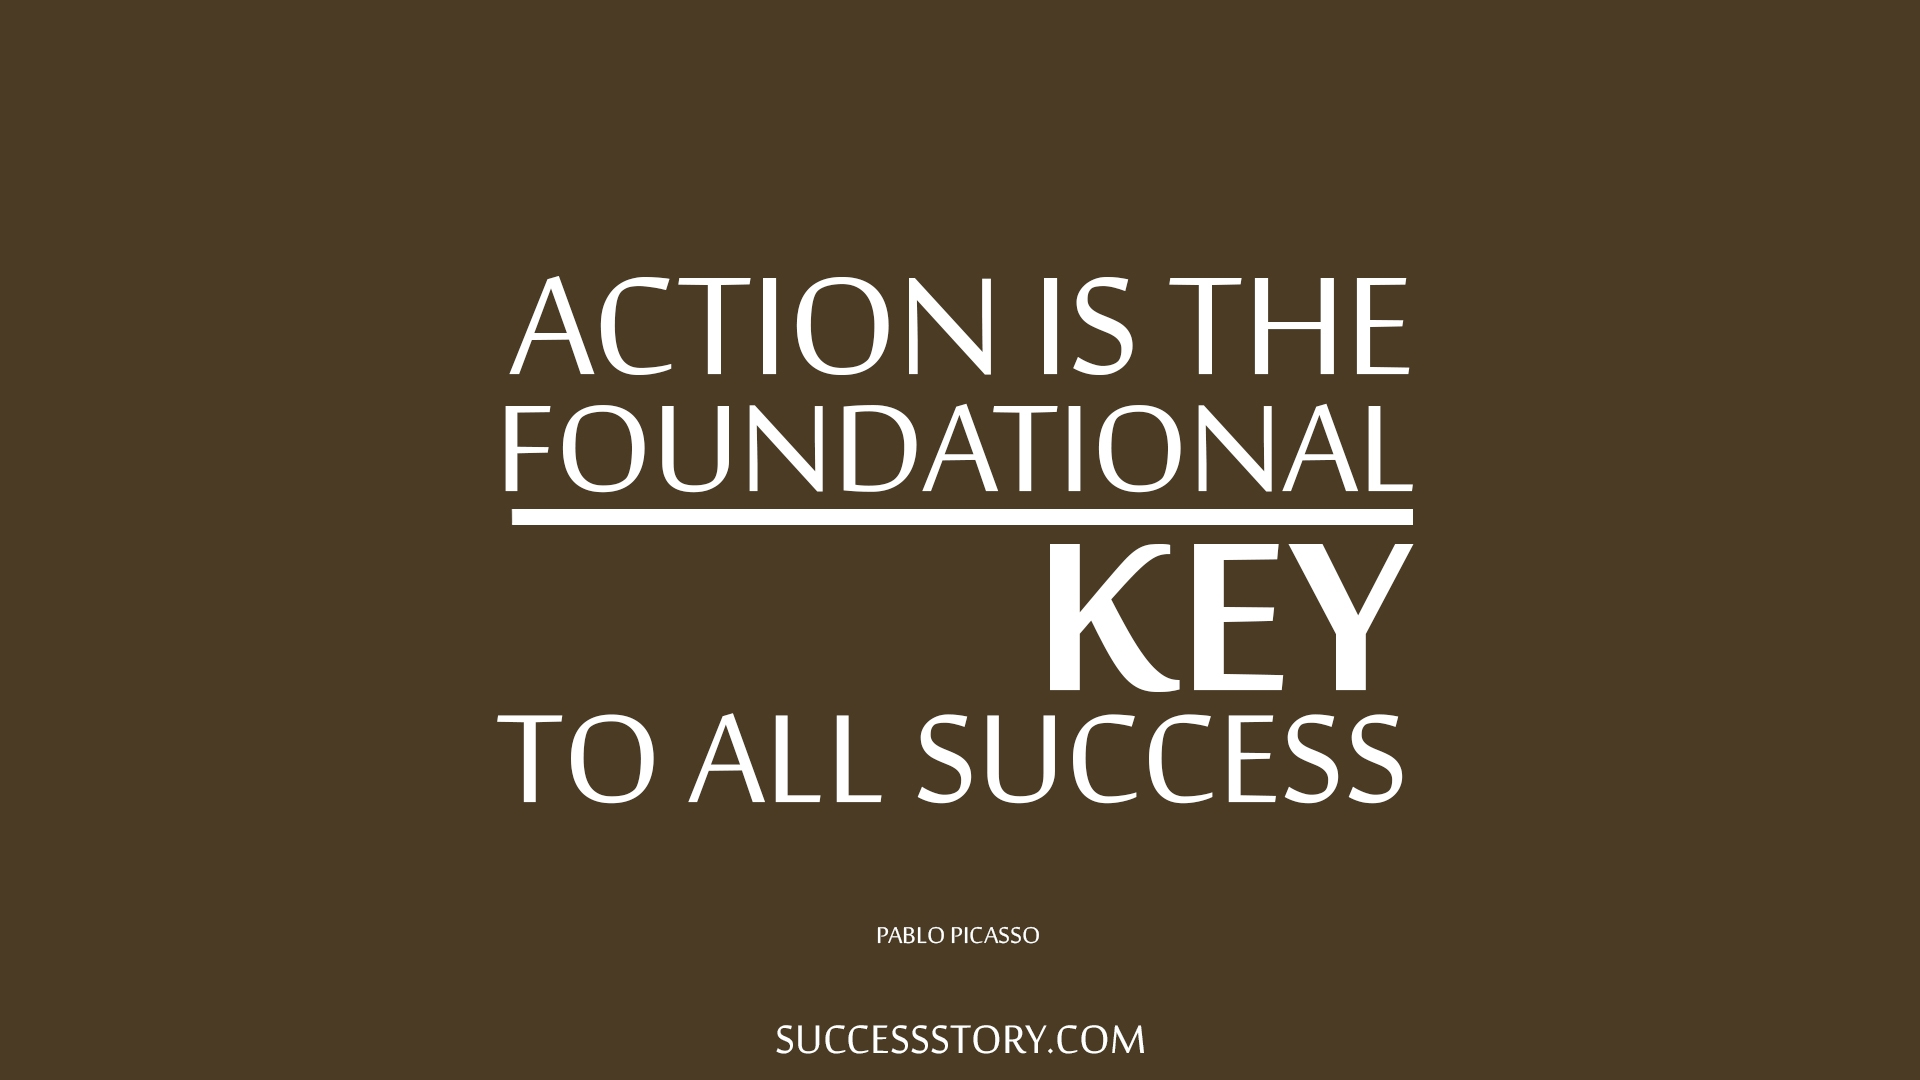 pablo picasso quotes famous quotes successstory action is the foundational key to all success